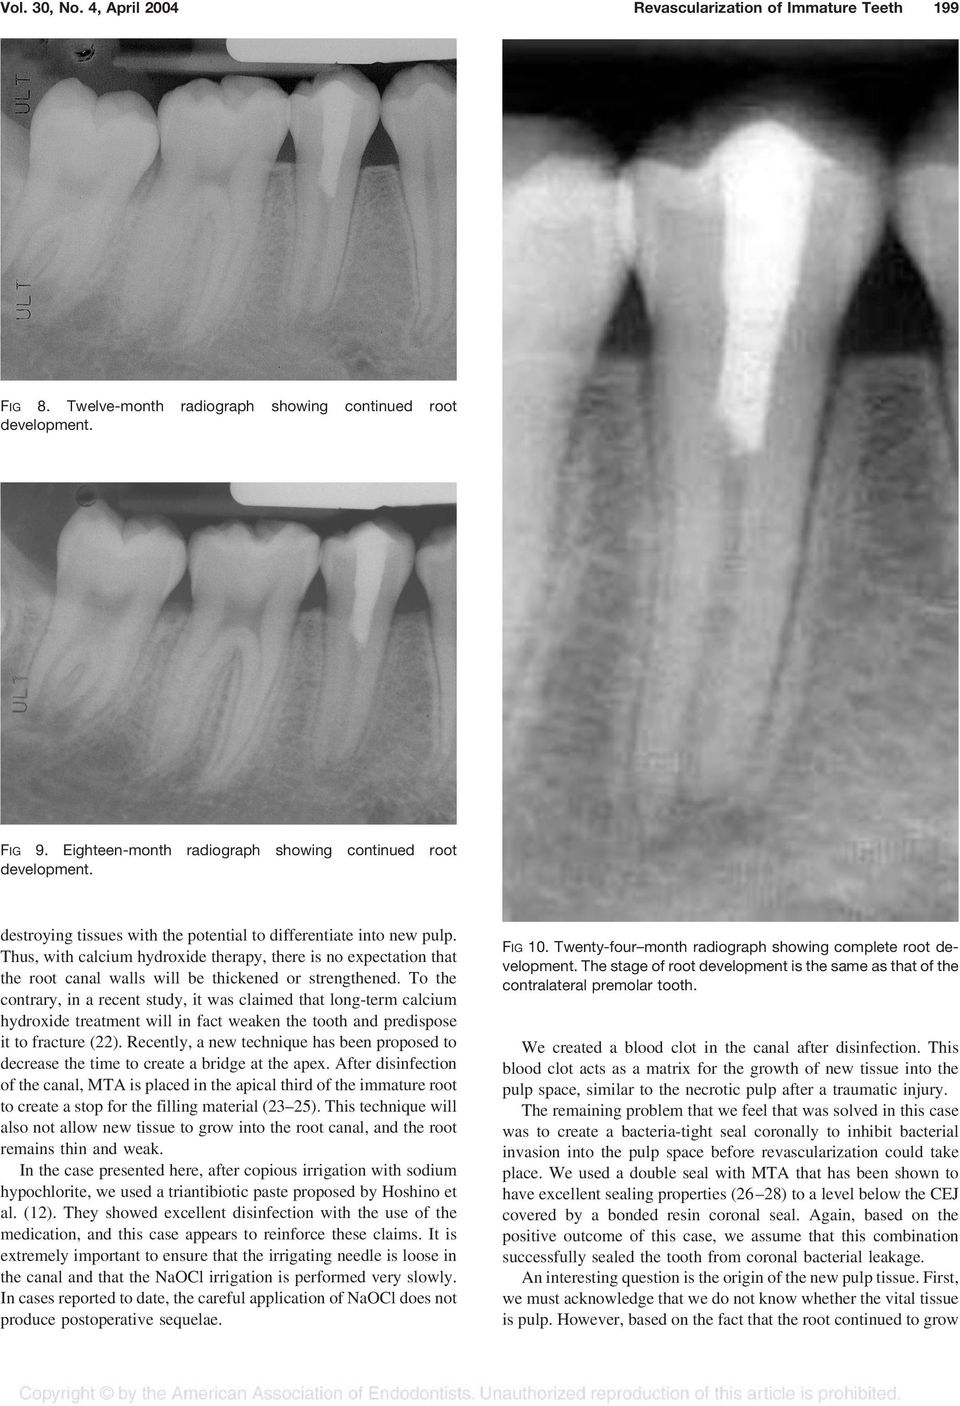 Thus, with calcium hydroxide therapy, there is no expectation that the root canal walls will be thickened or strengthened.